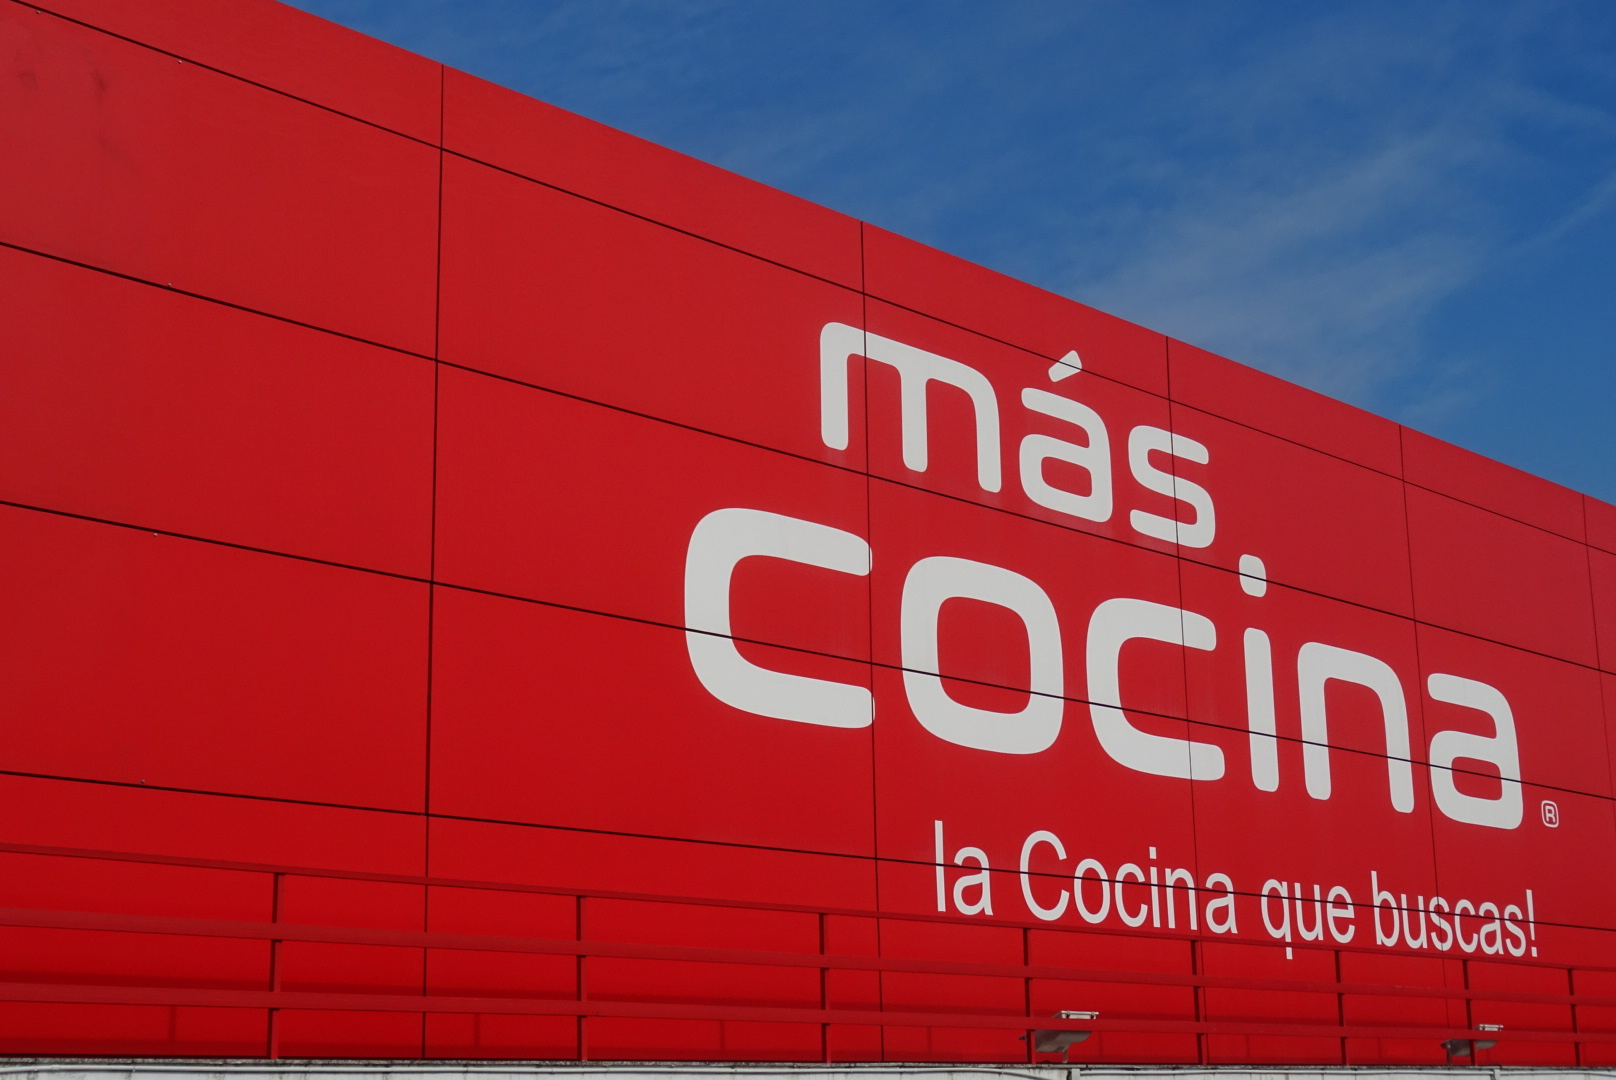 Cocinas Vigo Más Cocina Specialised In Bespoke Home And Kitchen Projects